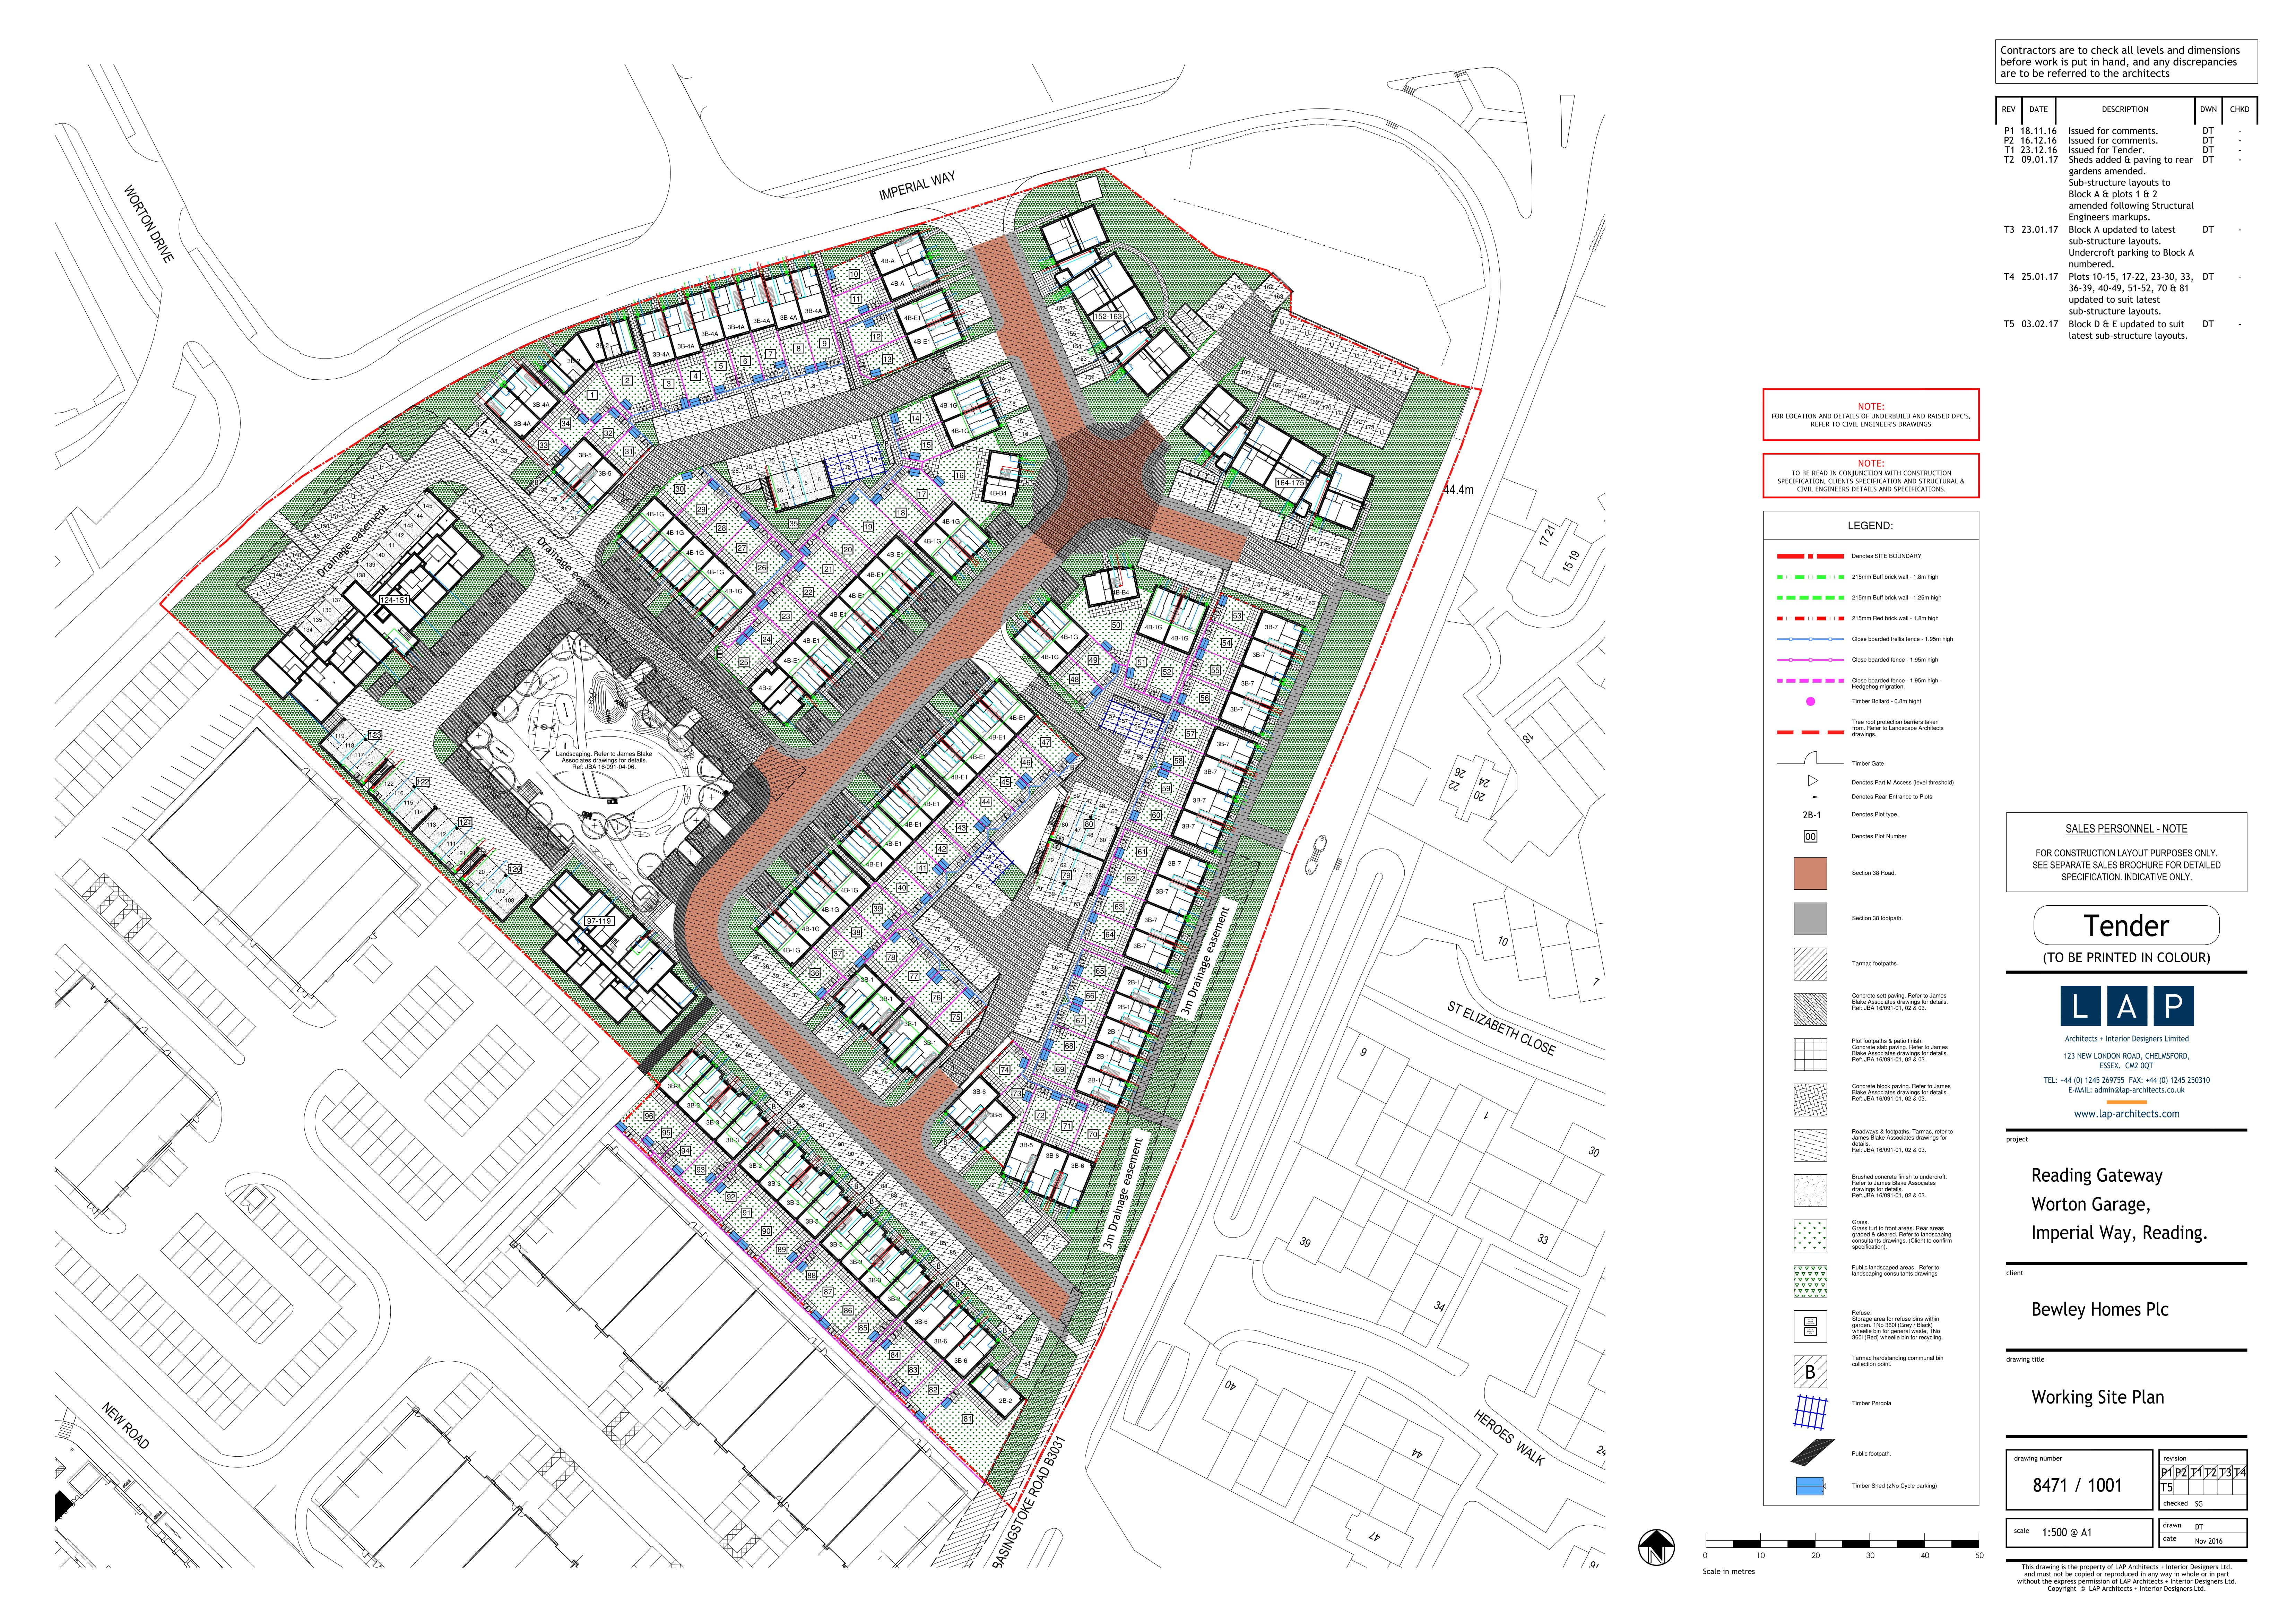 Bewley Homes Plc acquires Reading Gateway site